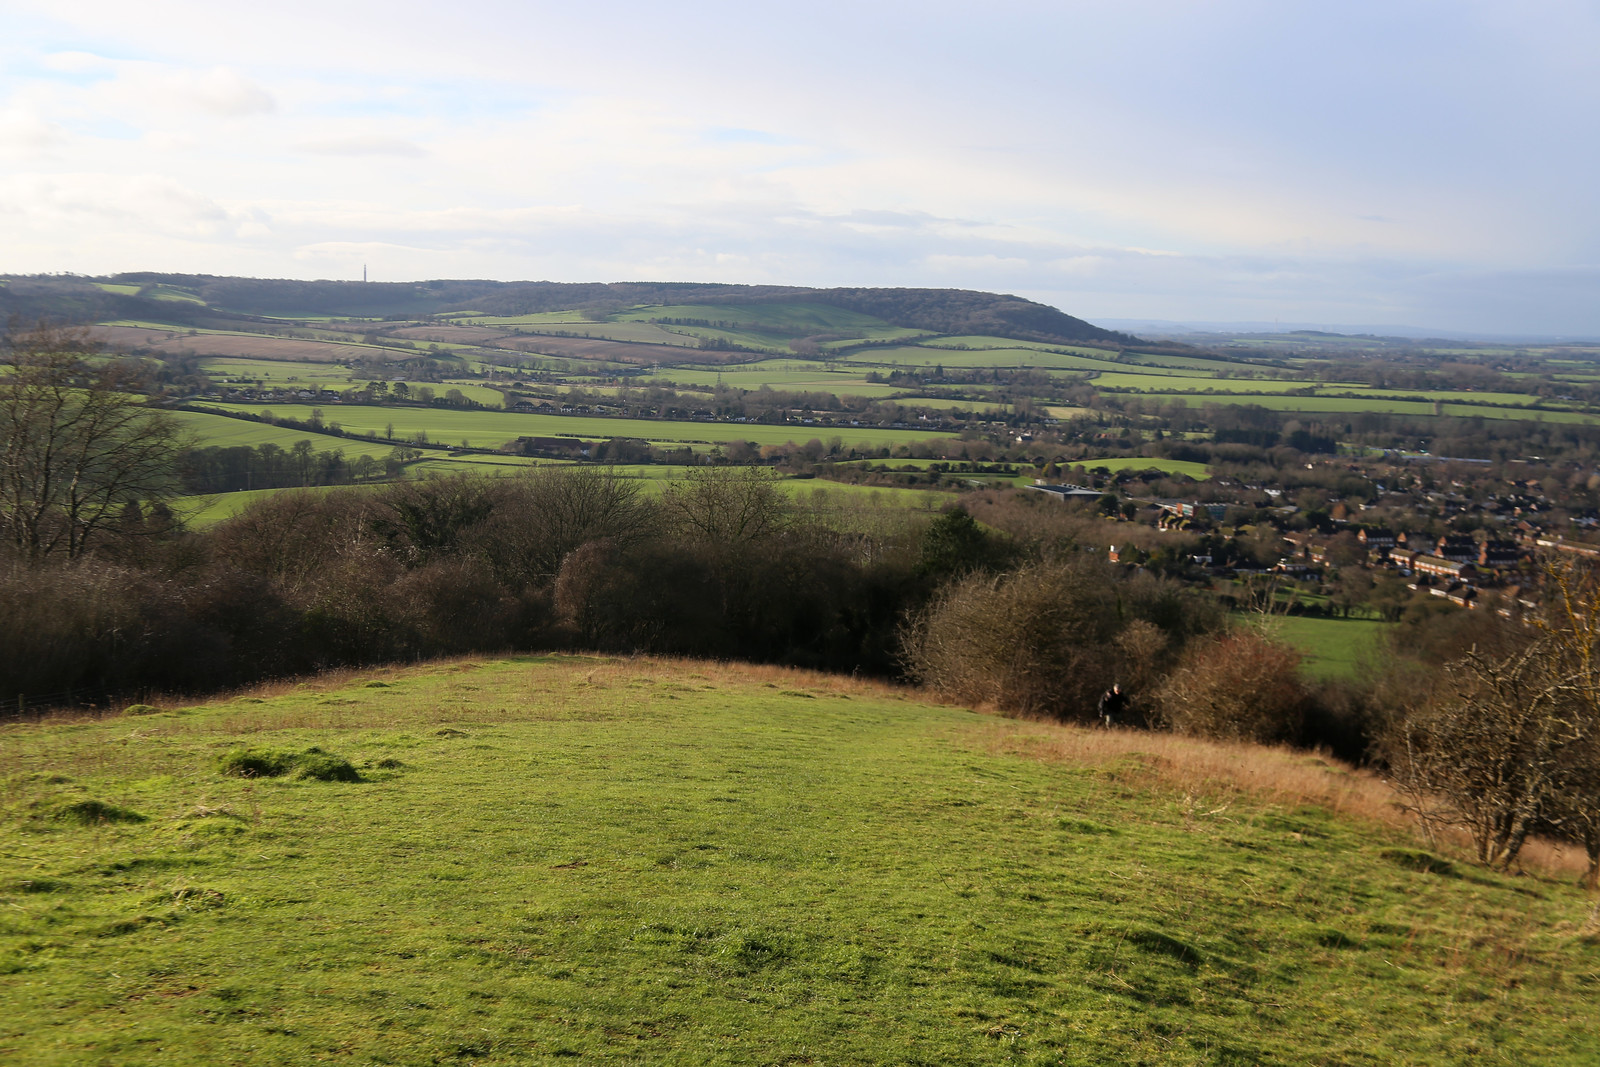 View from Whiteleaf Hill near Princes Risborough